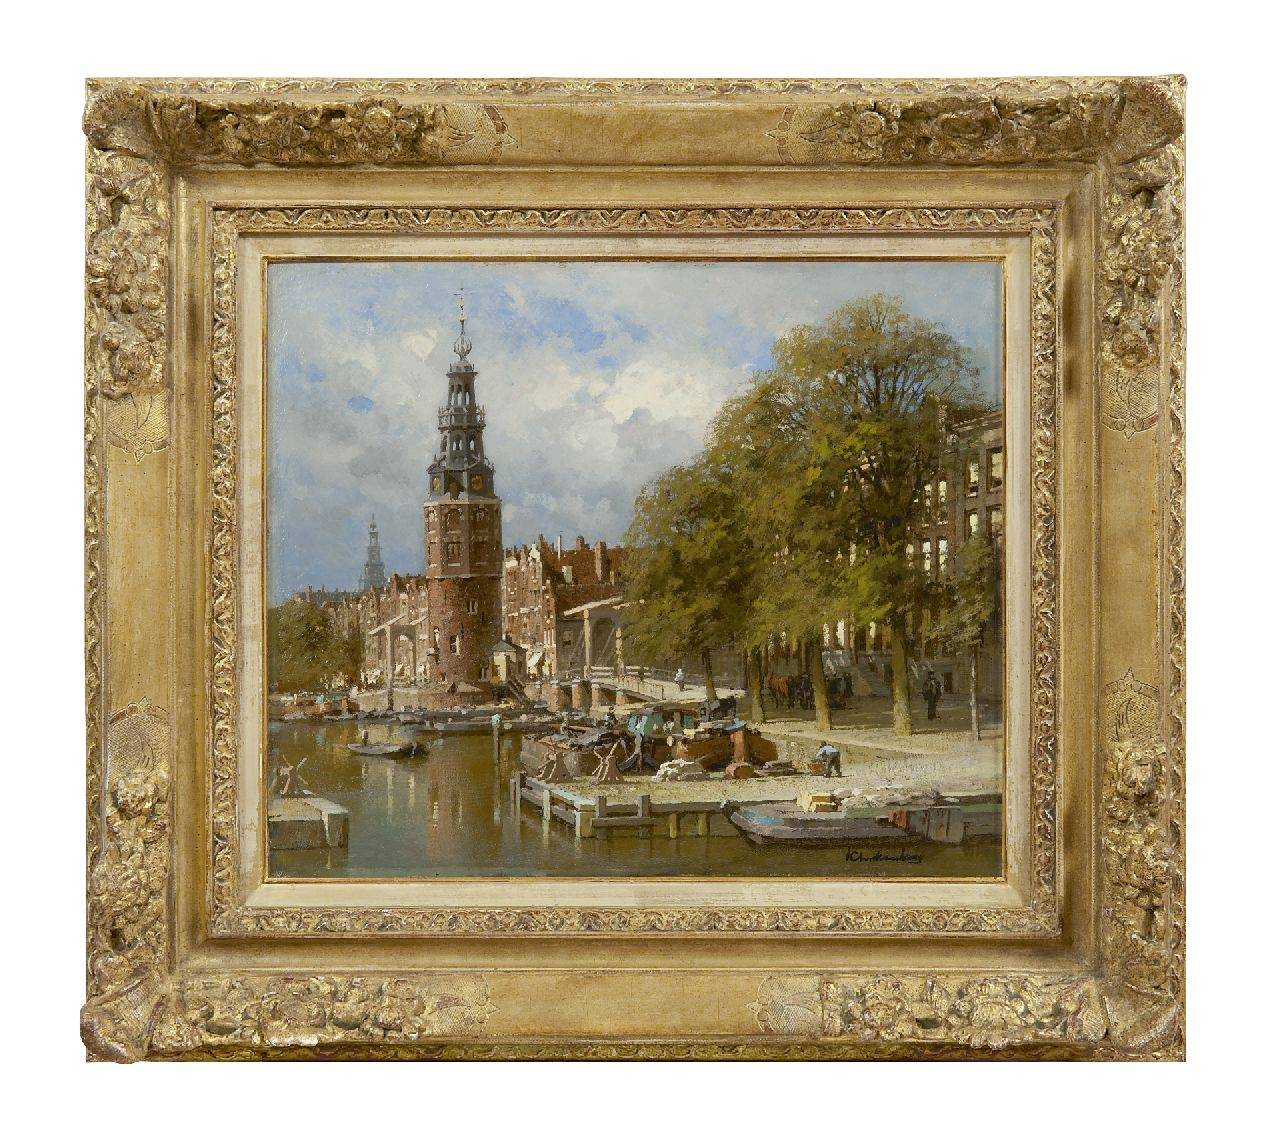 Klinkenberg J.C.K.  | Johannes Christiaan Karel Klinkenberg | Paintings offered for sale | The Montelbaanstoren near the Kalkmarktsluis, Amsterdam, oil on canvas 39.3 x 47.3 cm, signed l.r.